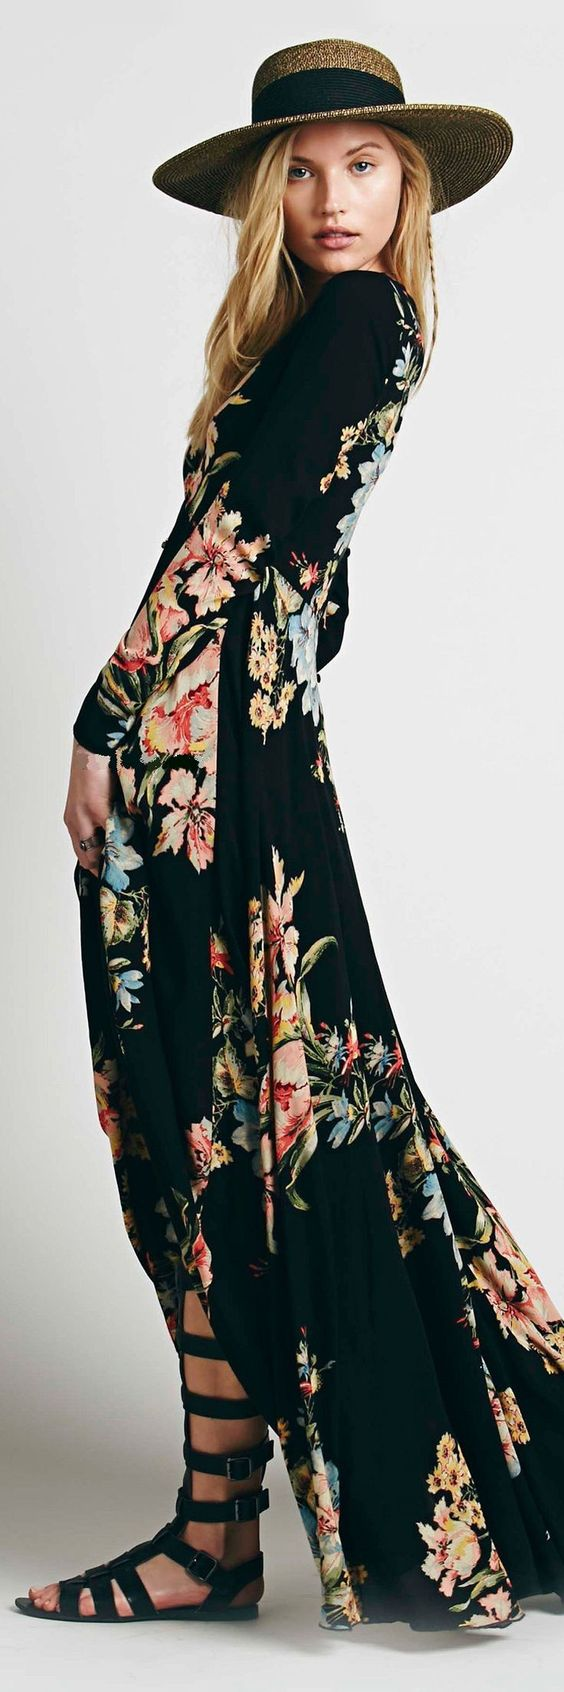 Floral maxi dress, straw hat w/black band, and black gladiator sandals.: